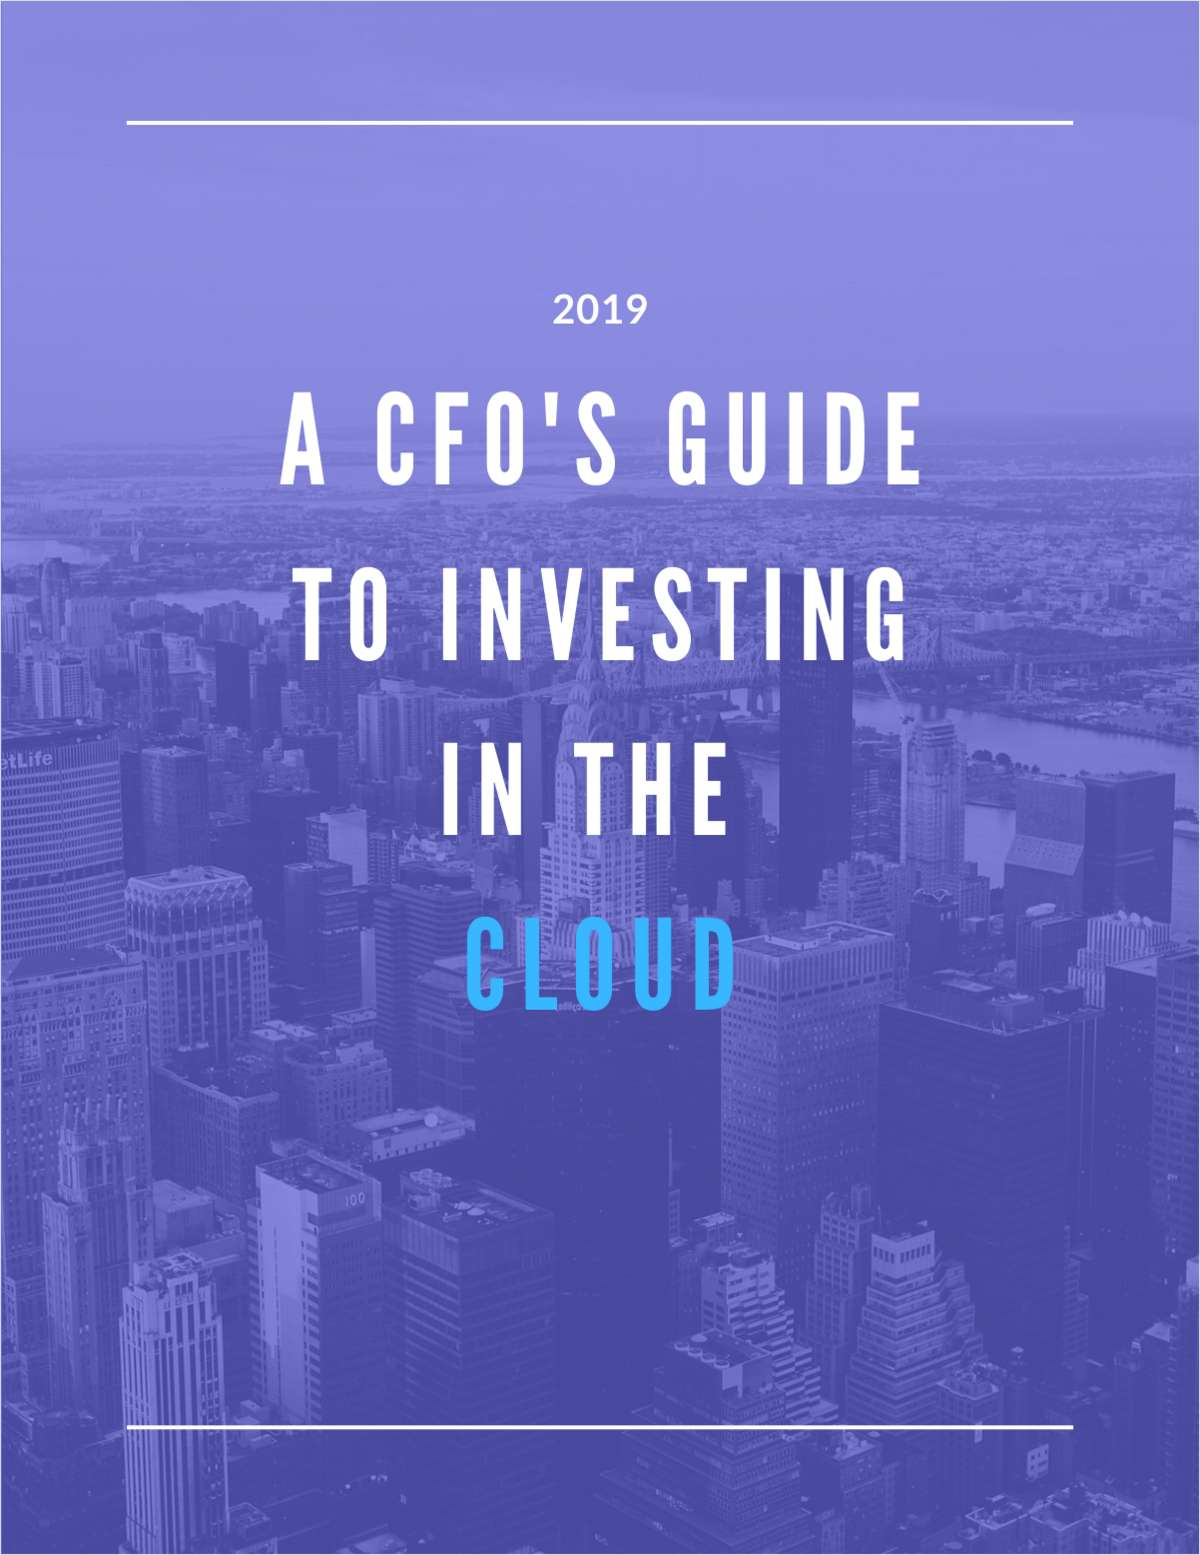 A CFO's Guide to Investing in the Cloud